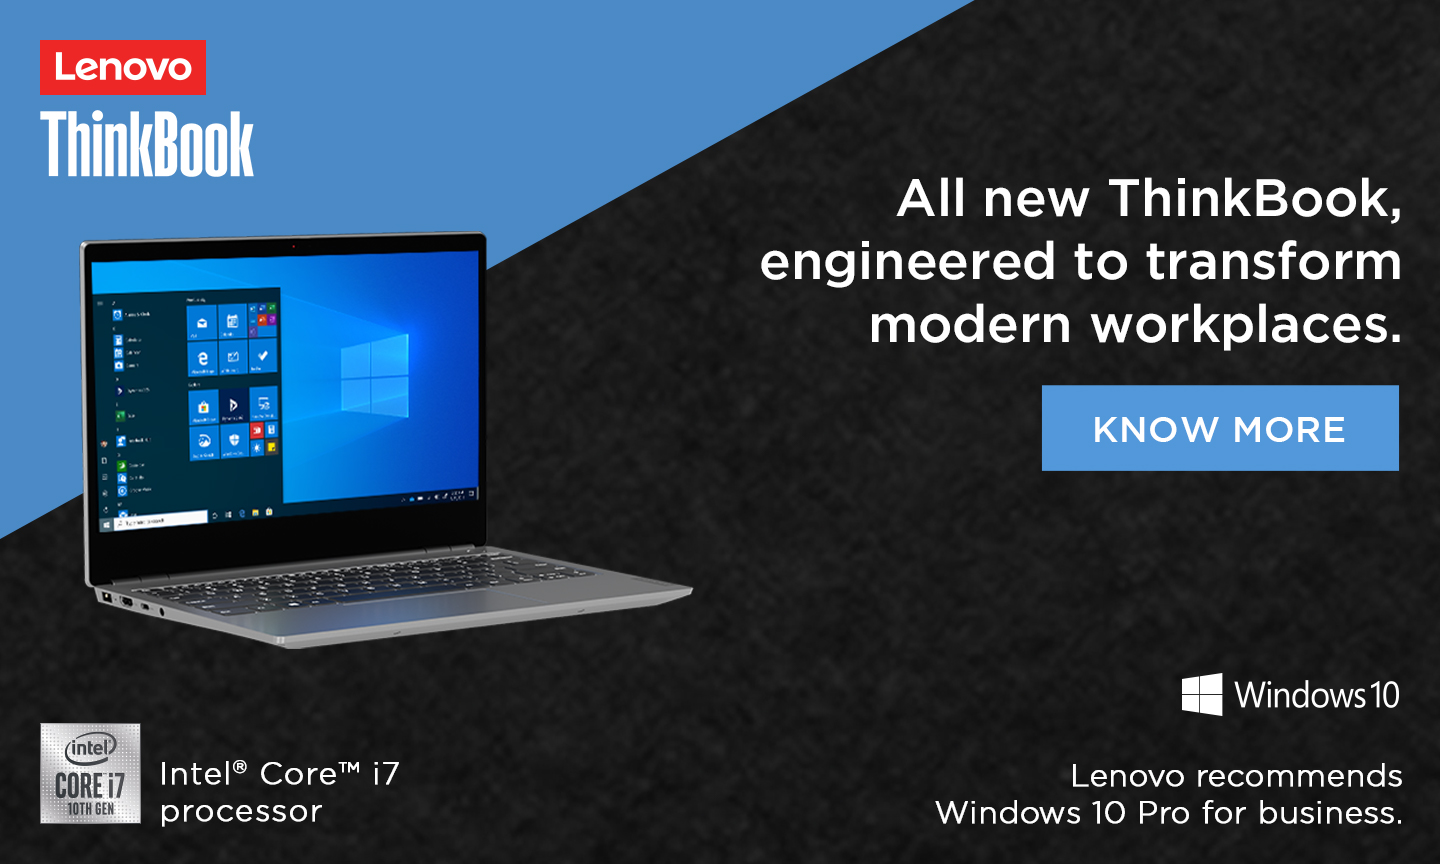 Lenovo ThinkBook-series aims to bring the office home with business-centric features